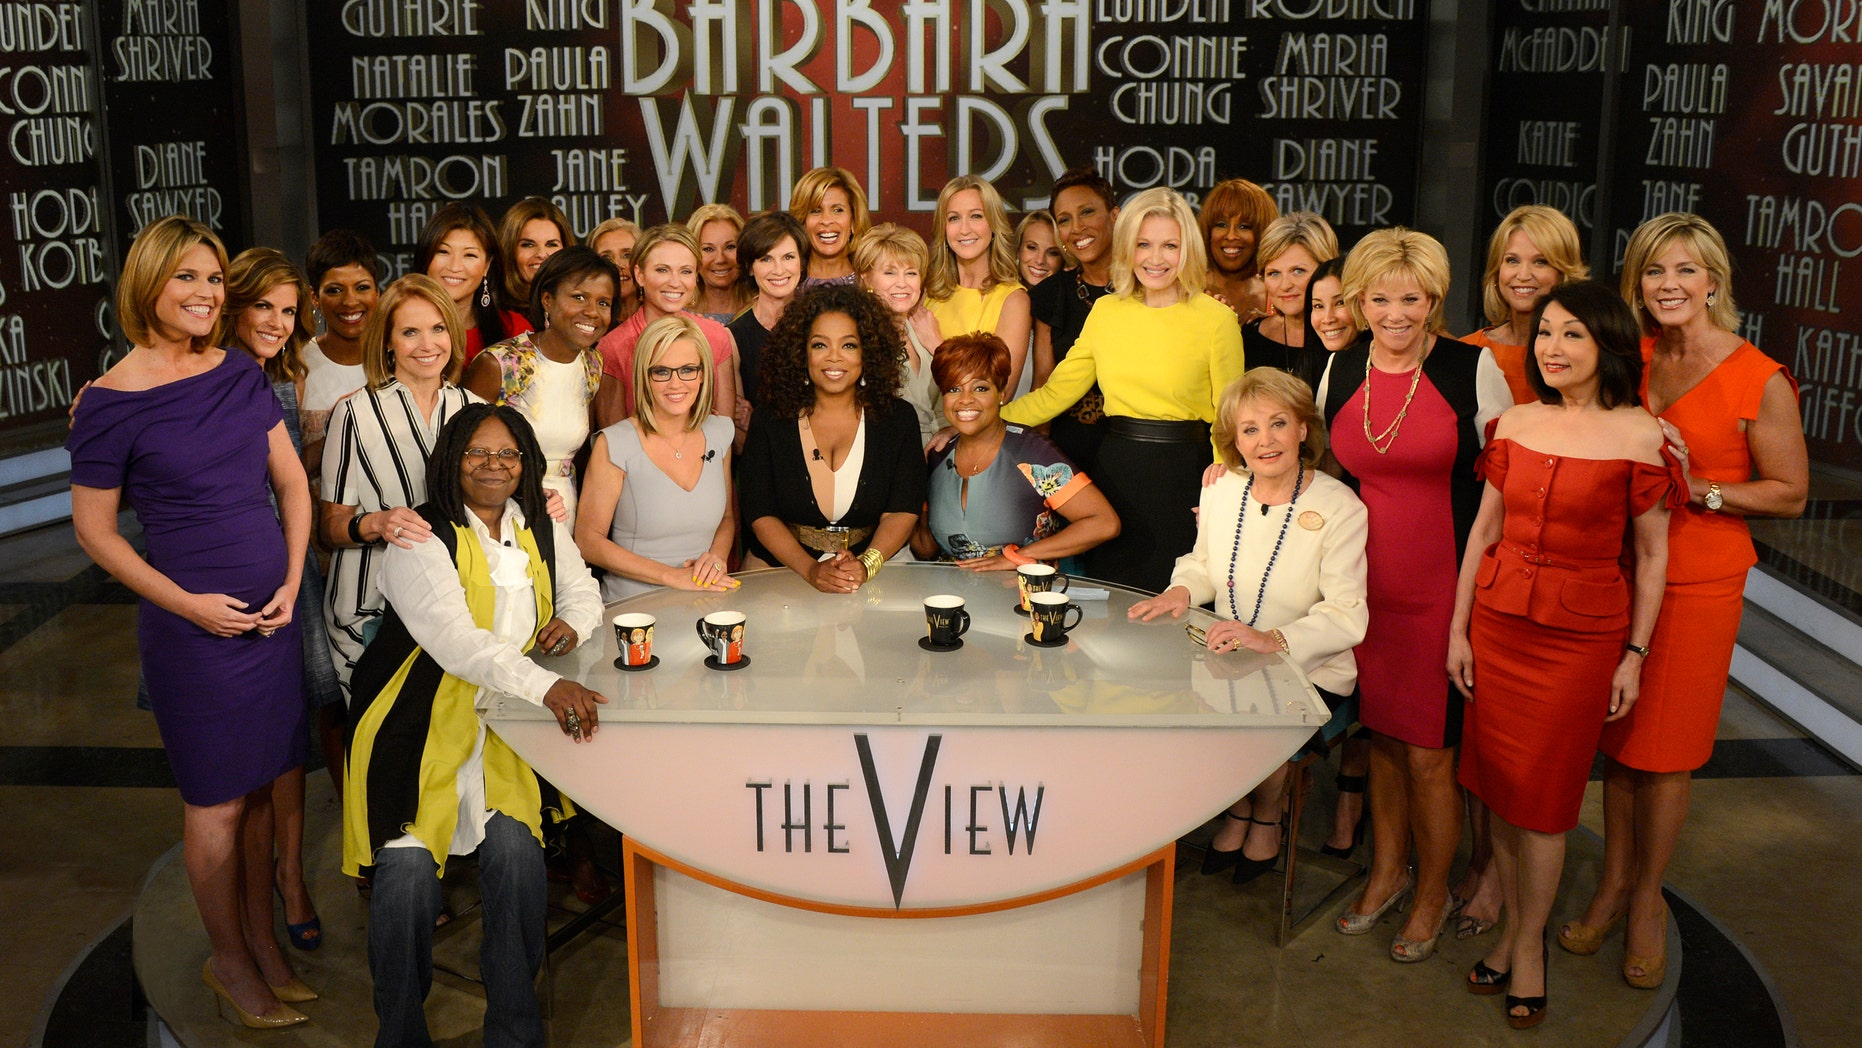 """May 15, 2014. Seated from left, Whoopi Goldberg, Jenny McCarthy, Oprah Winfrey, Sherri Shepherd and Barbara Walters posing with female broadcasters during a taping of Walters' final co-host appearance on """"The View,"""" in New York."""